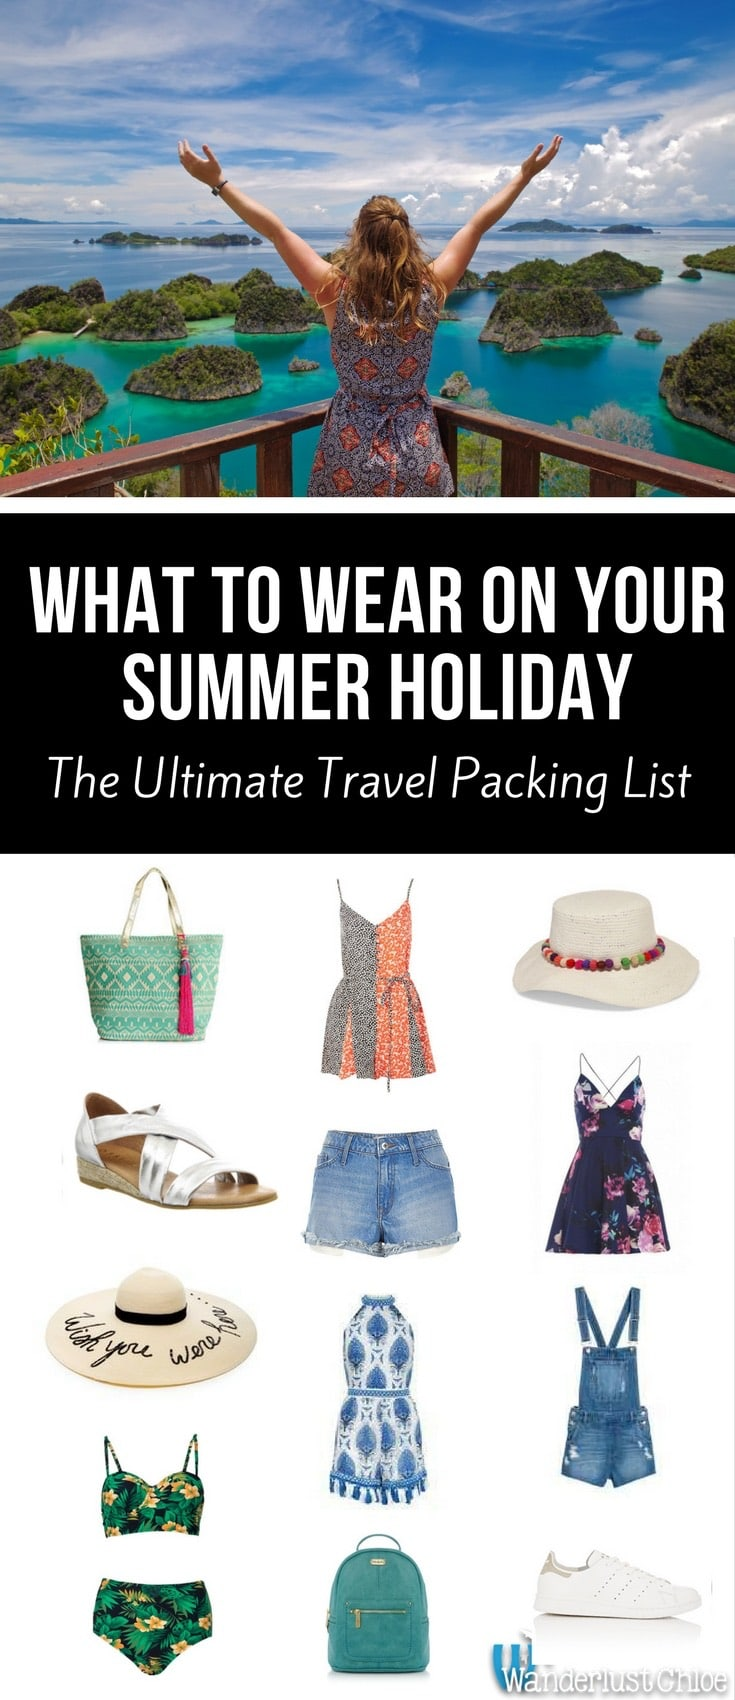 What To Wear On Your Summer Holiday